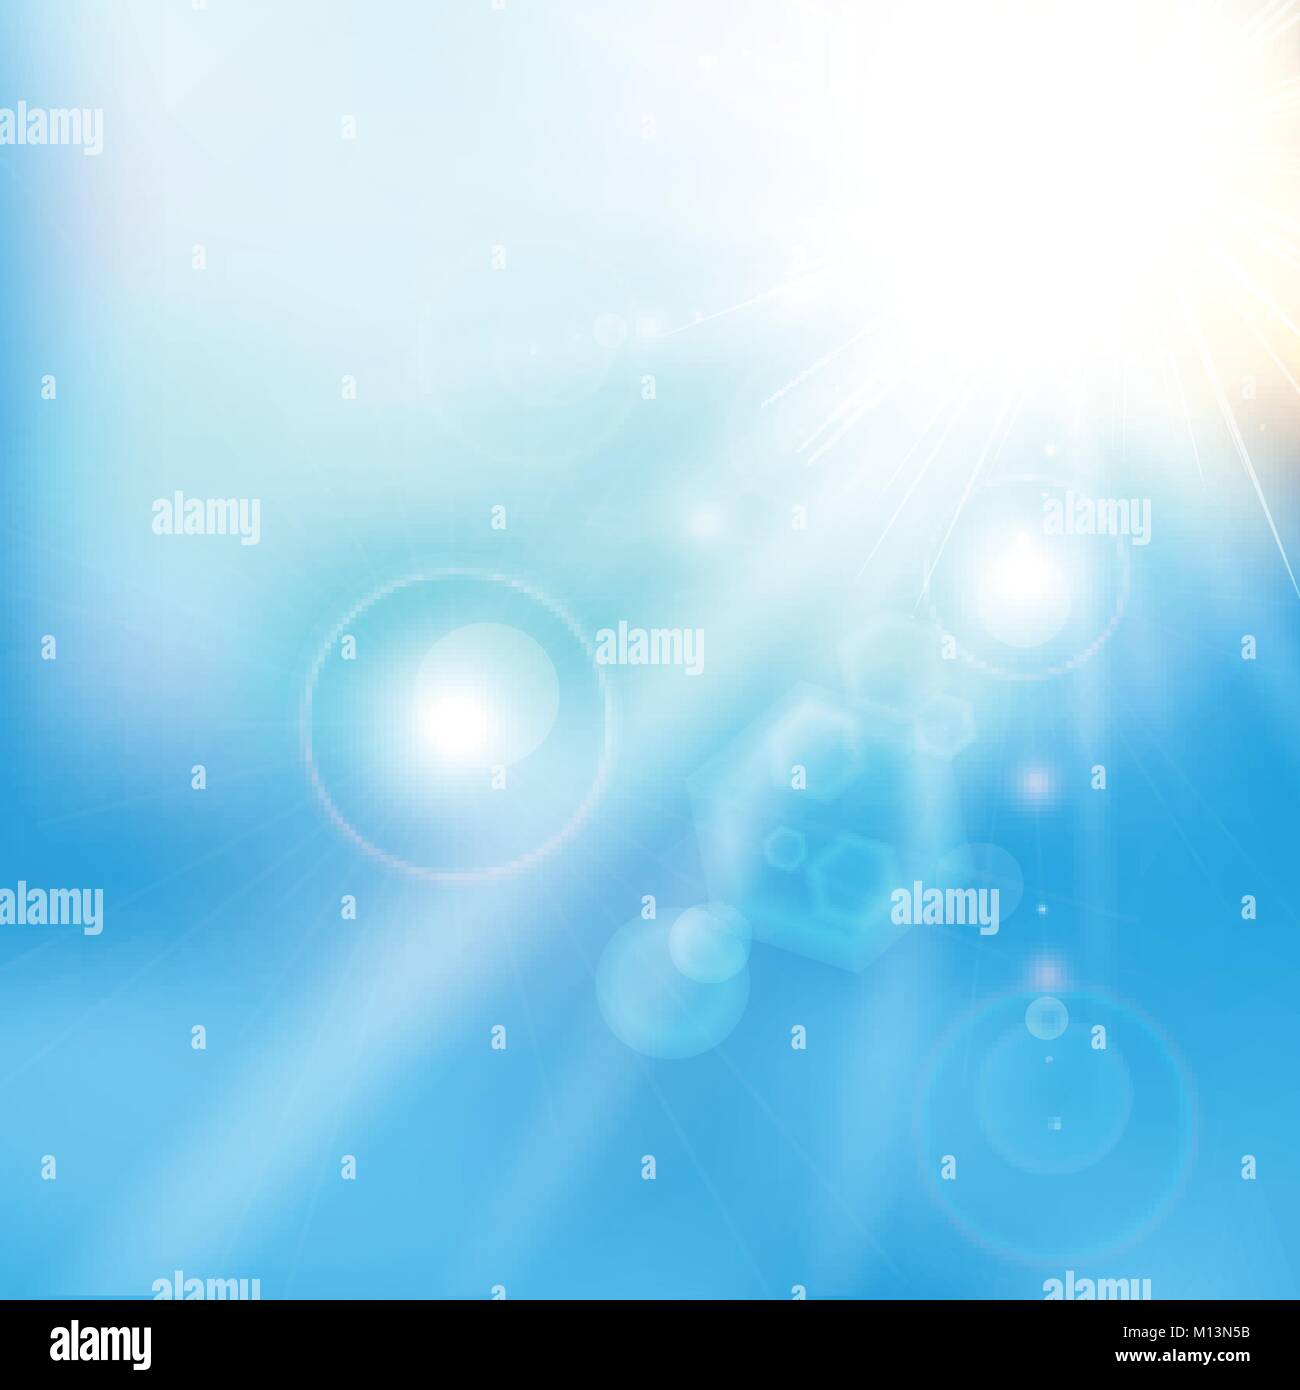 Spring Summer Sunlight Flare Abstract Blue Sky Color Background Vector Illustration